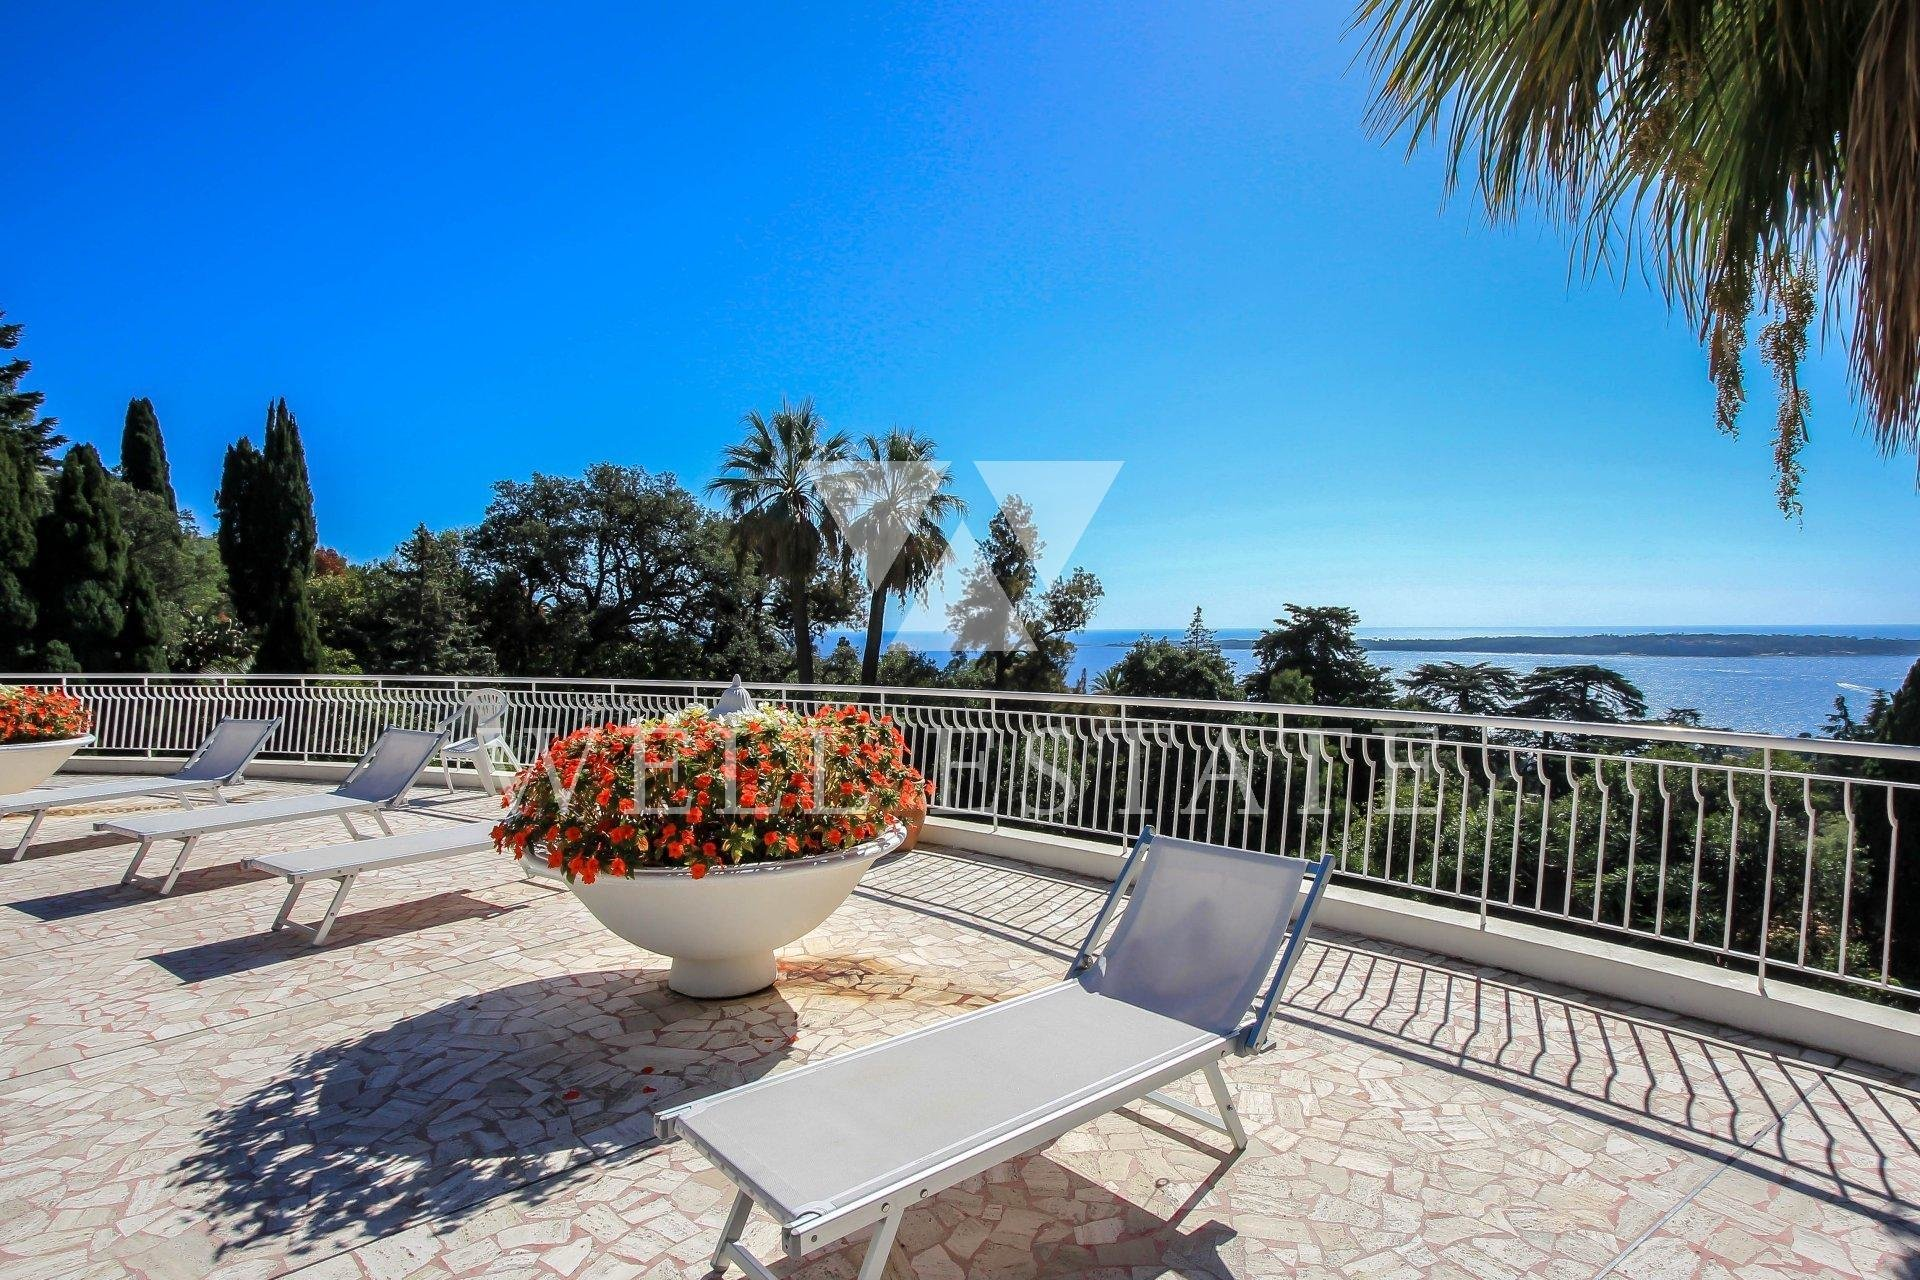 CANNES CALIFORNIE GRAND APPARTEMENT 156M2 3 CHAMBRES VUE MER